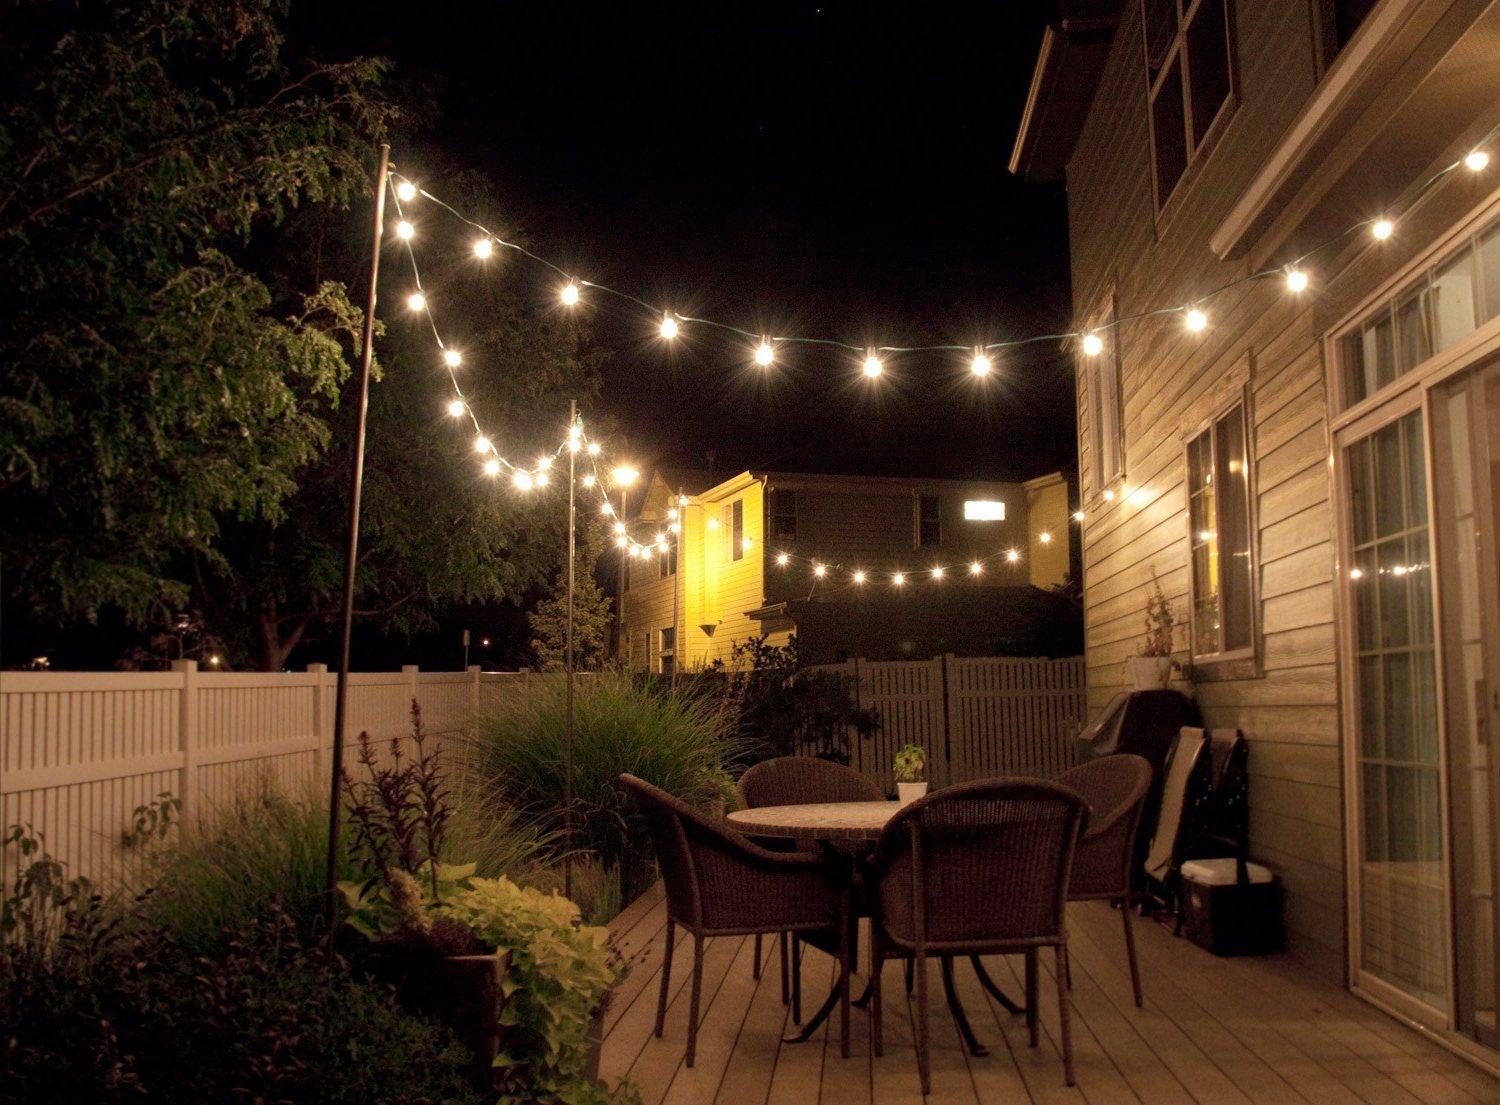 Outdoor Lanterns At Pottery Barn In Most Up To Date Pottery Barn String Lights Reviews – Lights Design Ideas (View 14 of 20)